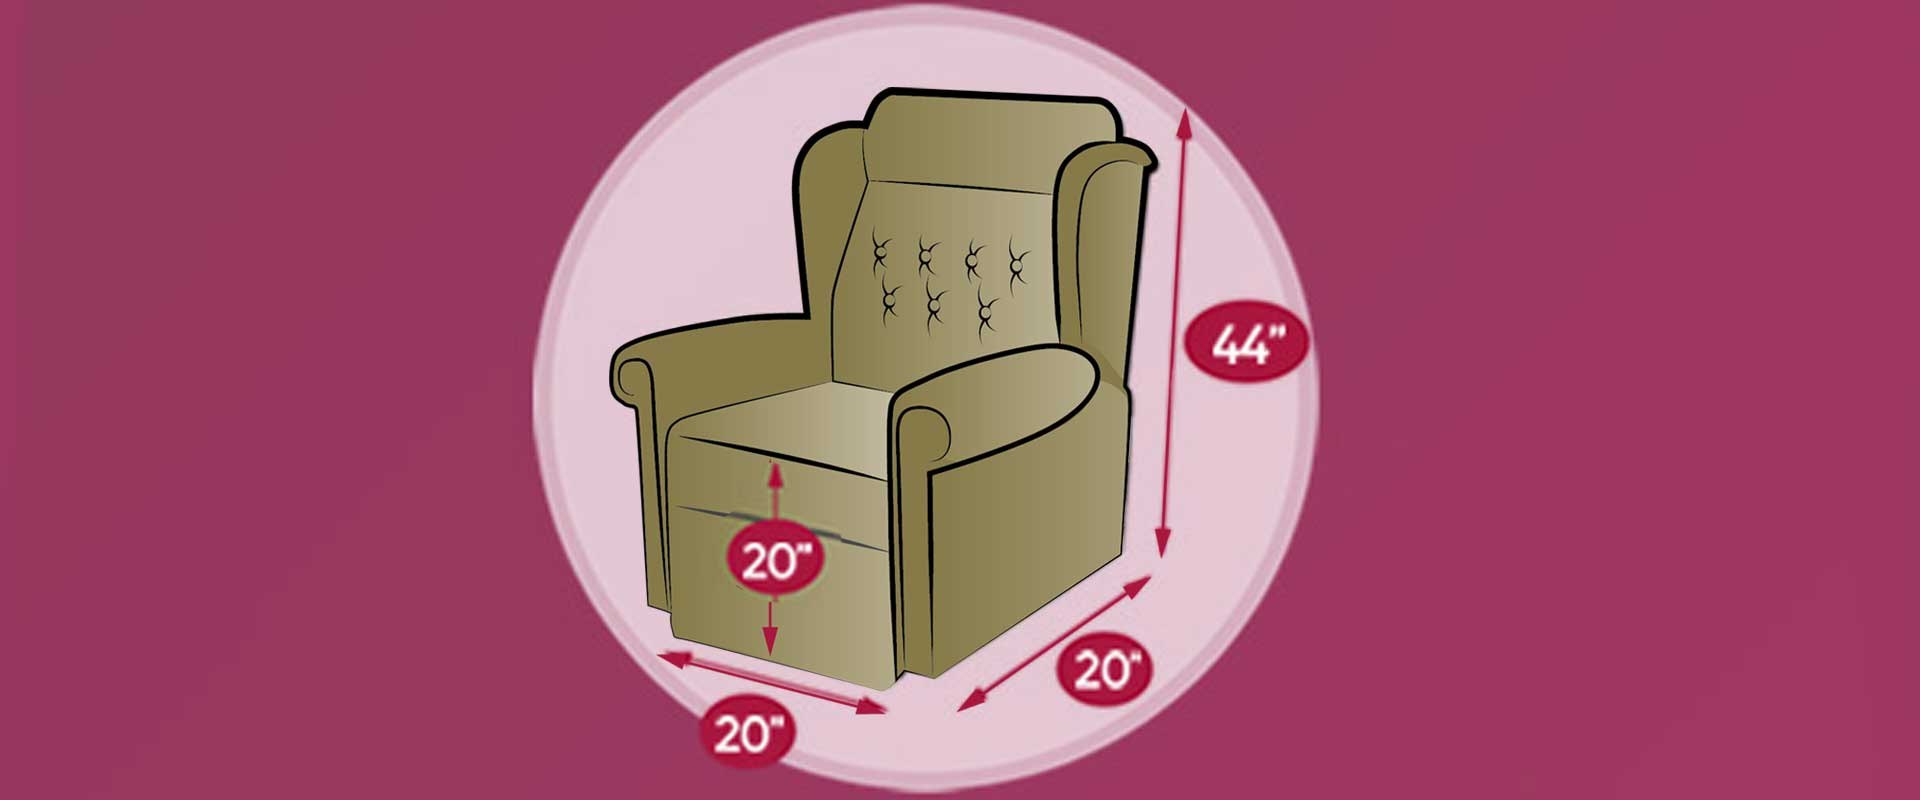 Orthopedic chair sizing